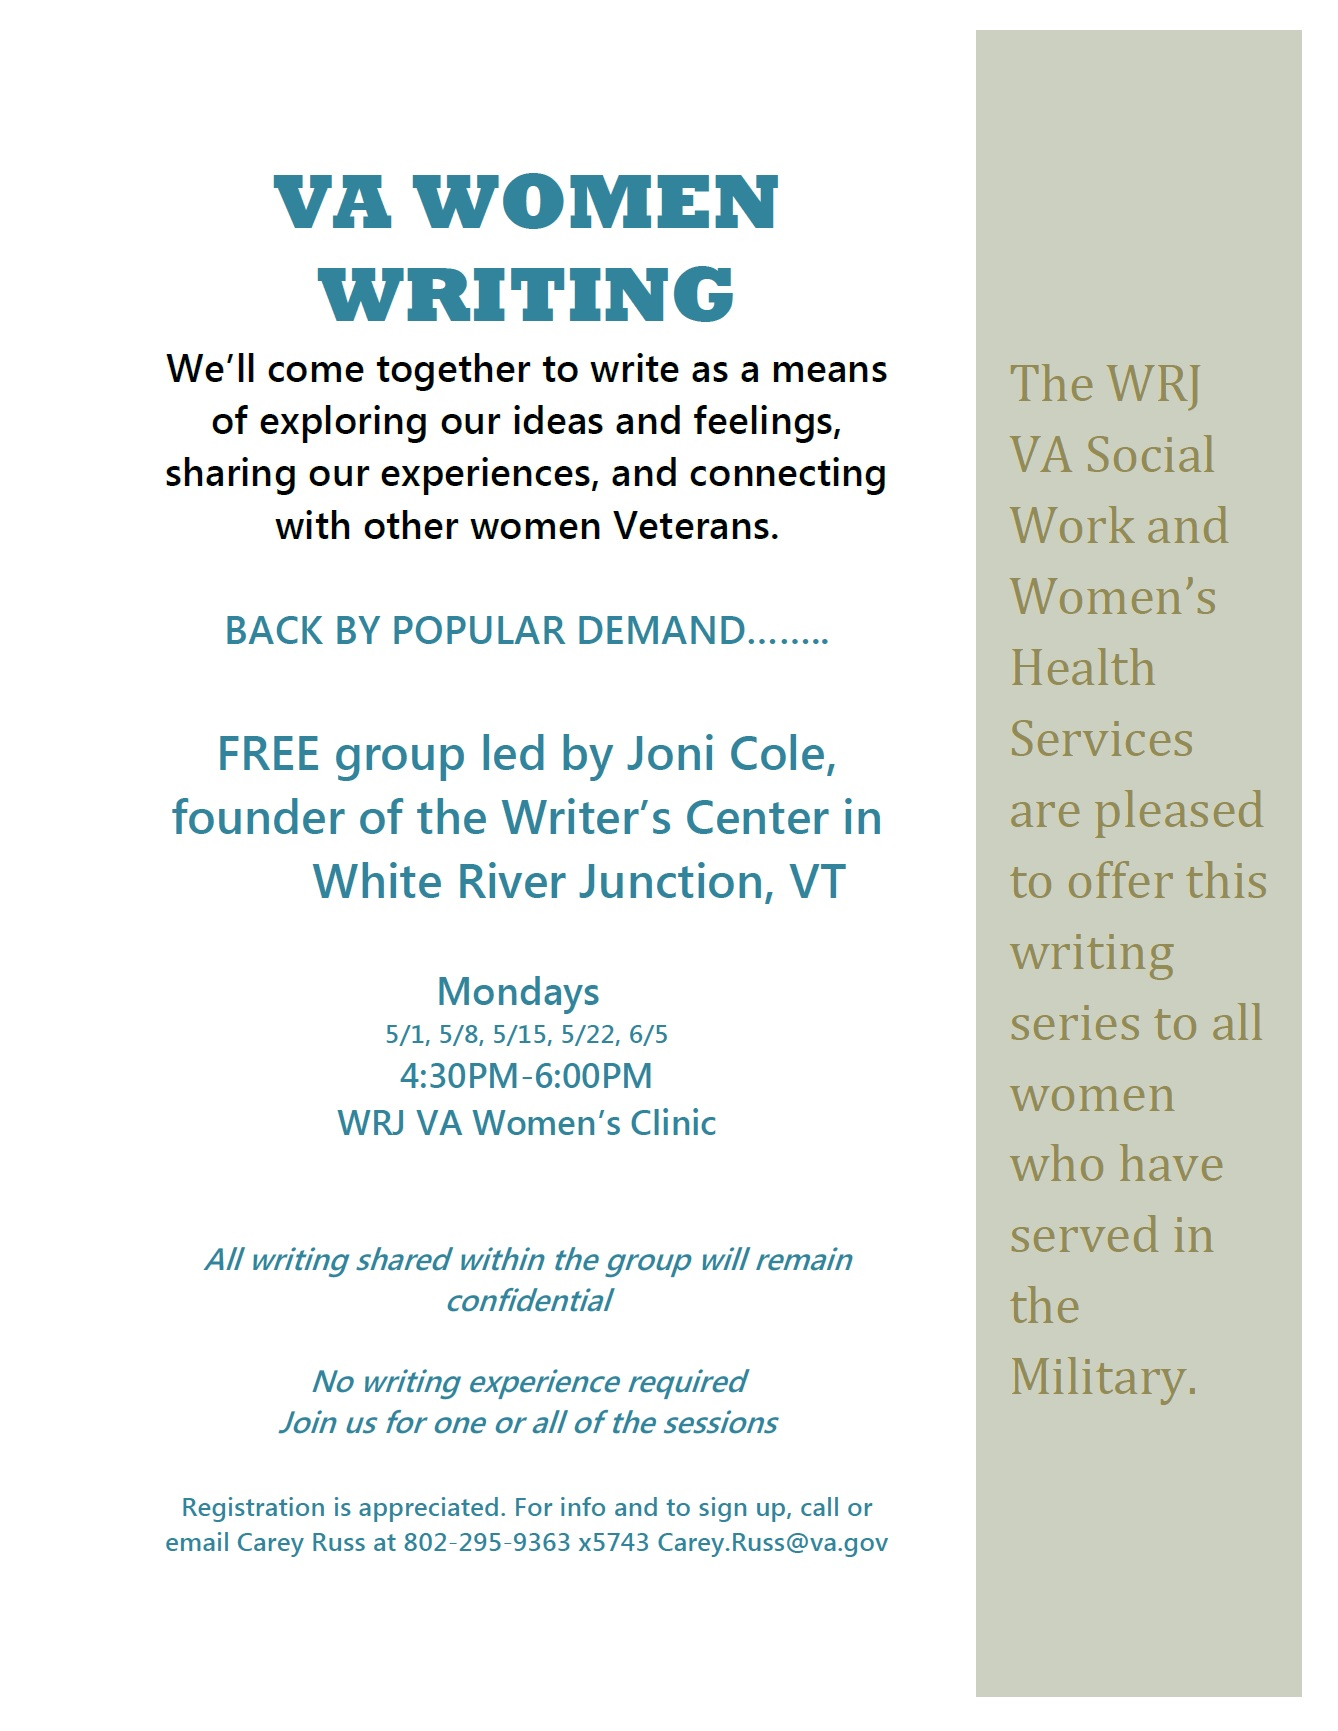 VA Women Writing